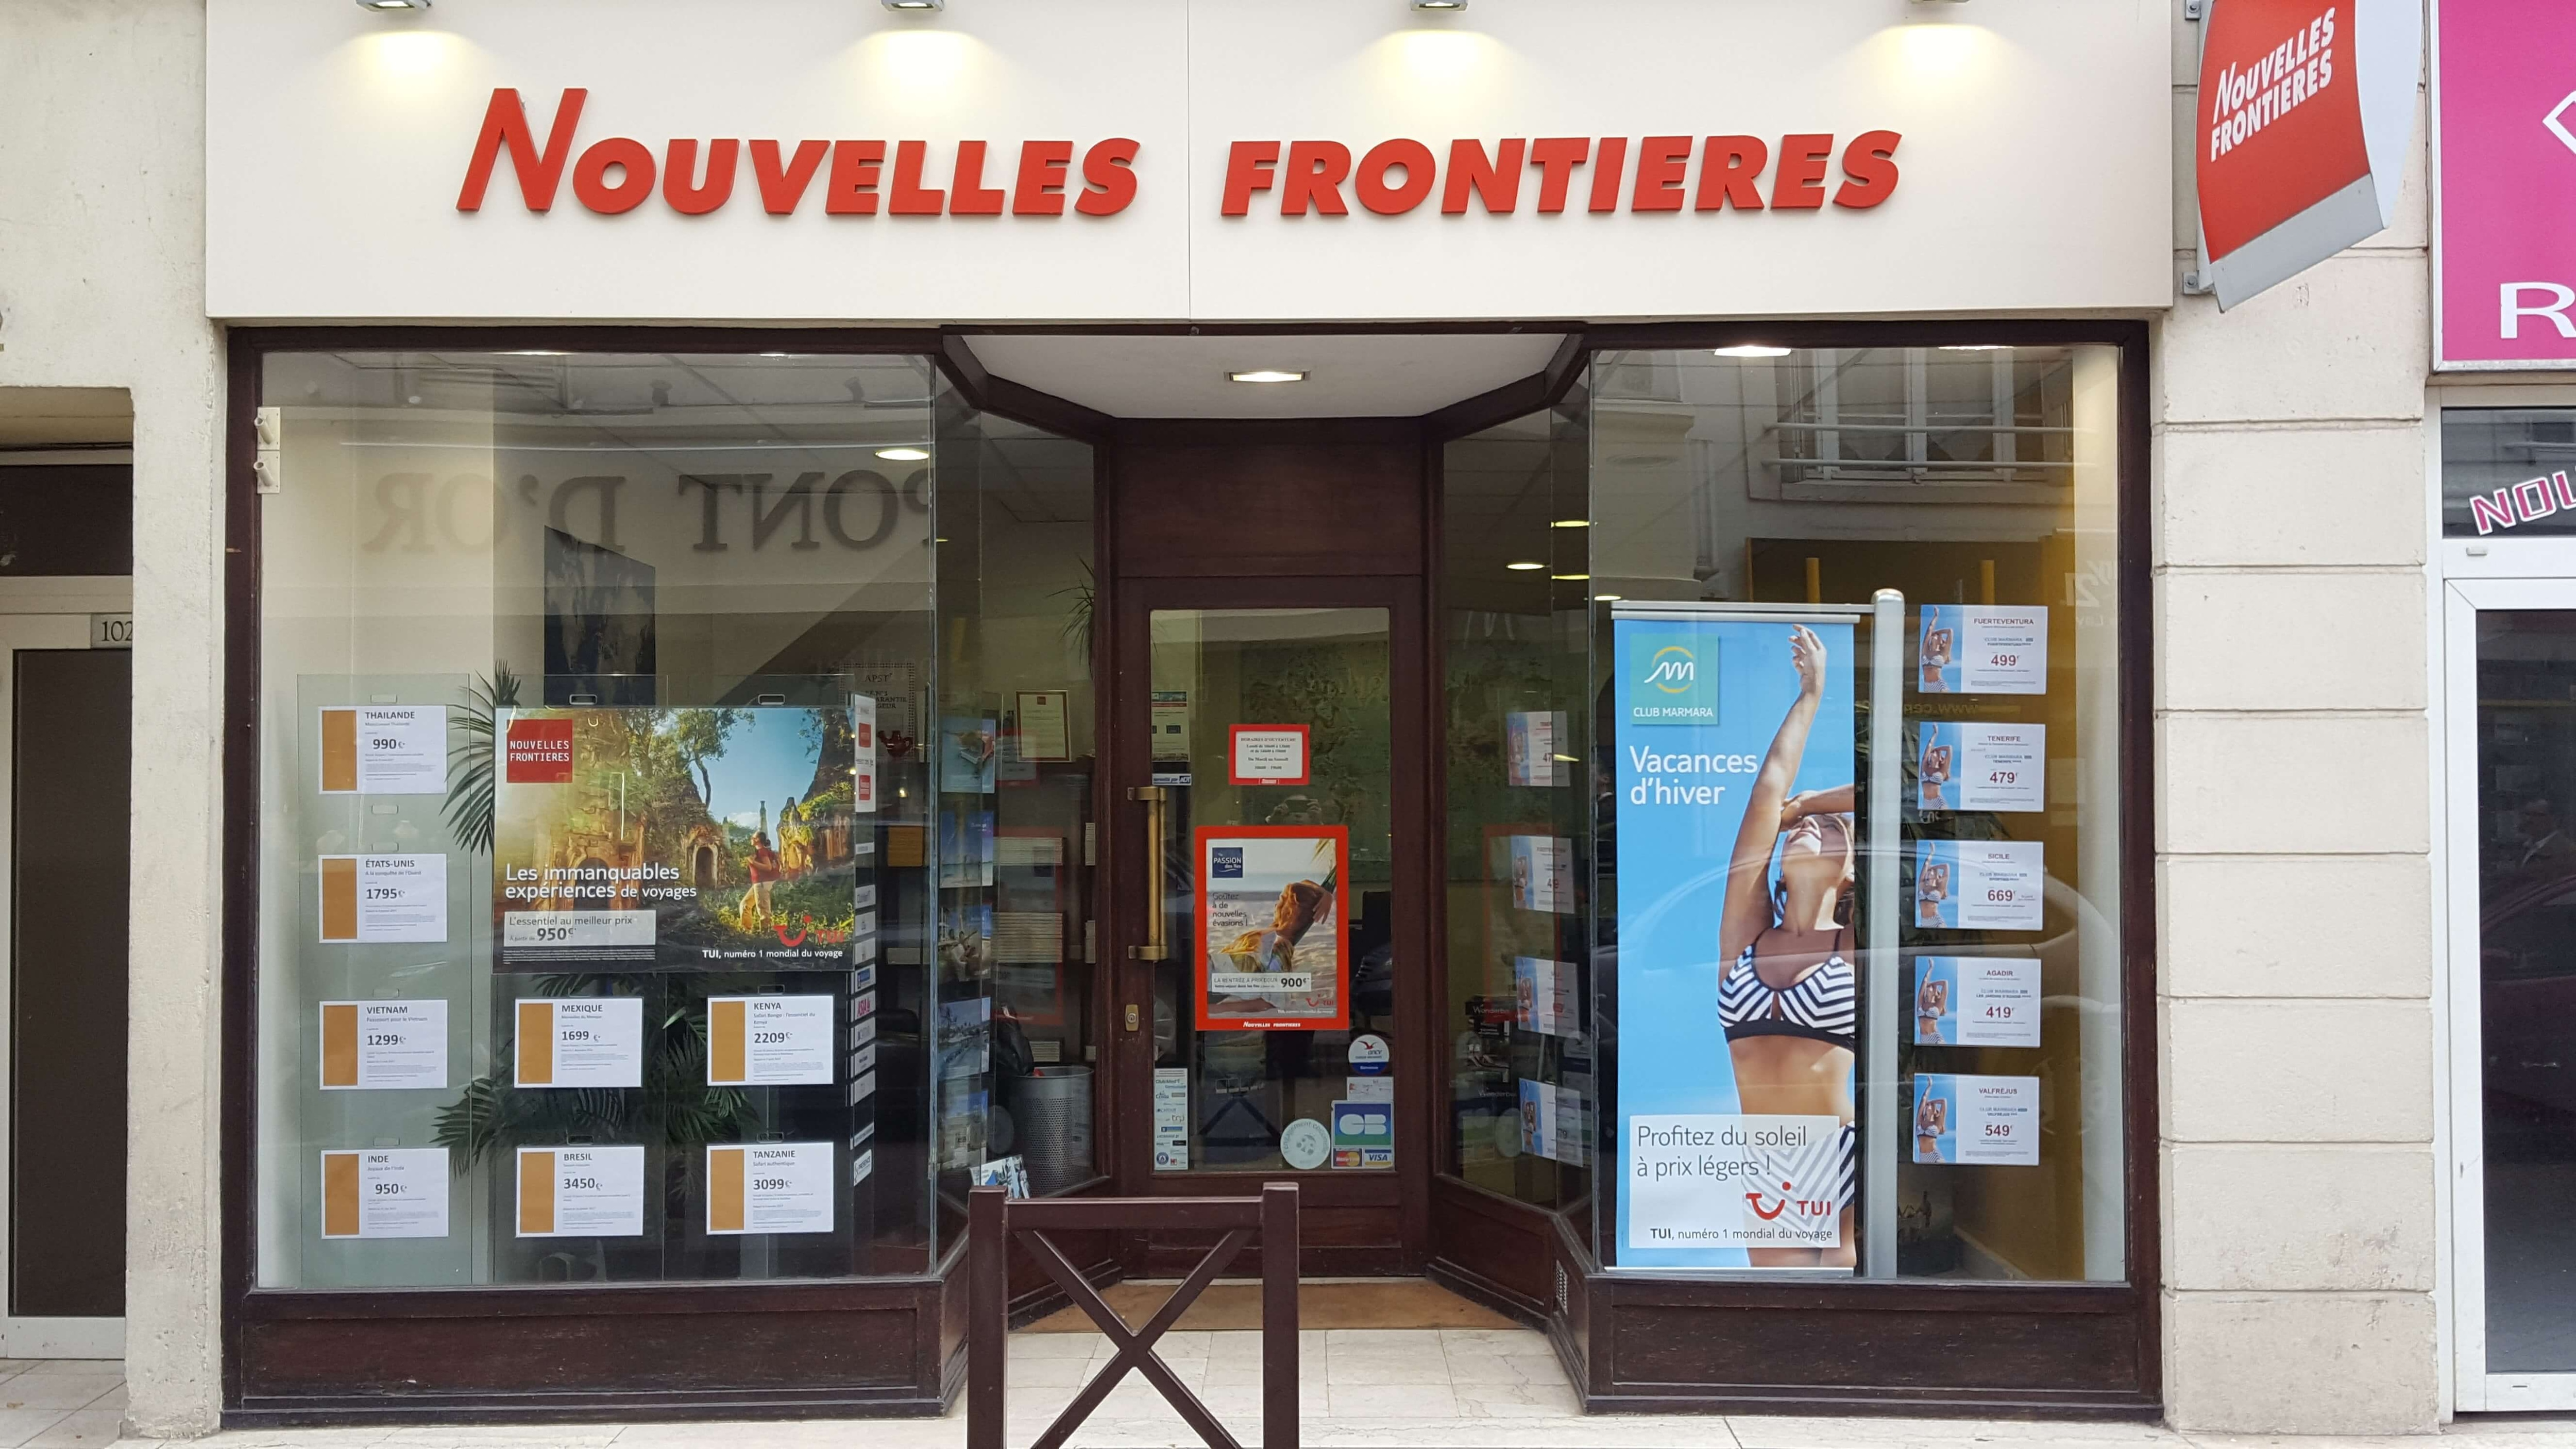 Agence de voyages nouvelles fronti res poissy tui for Agence nouvelle frontiere